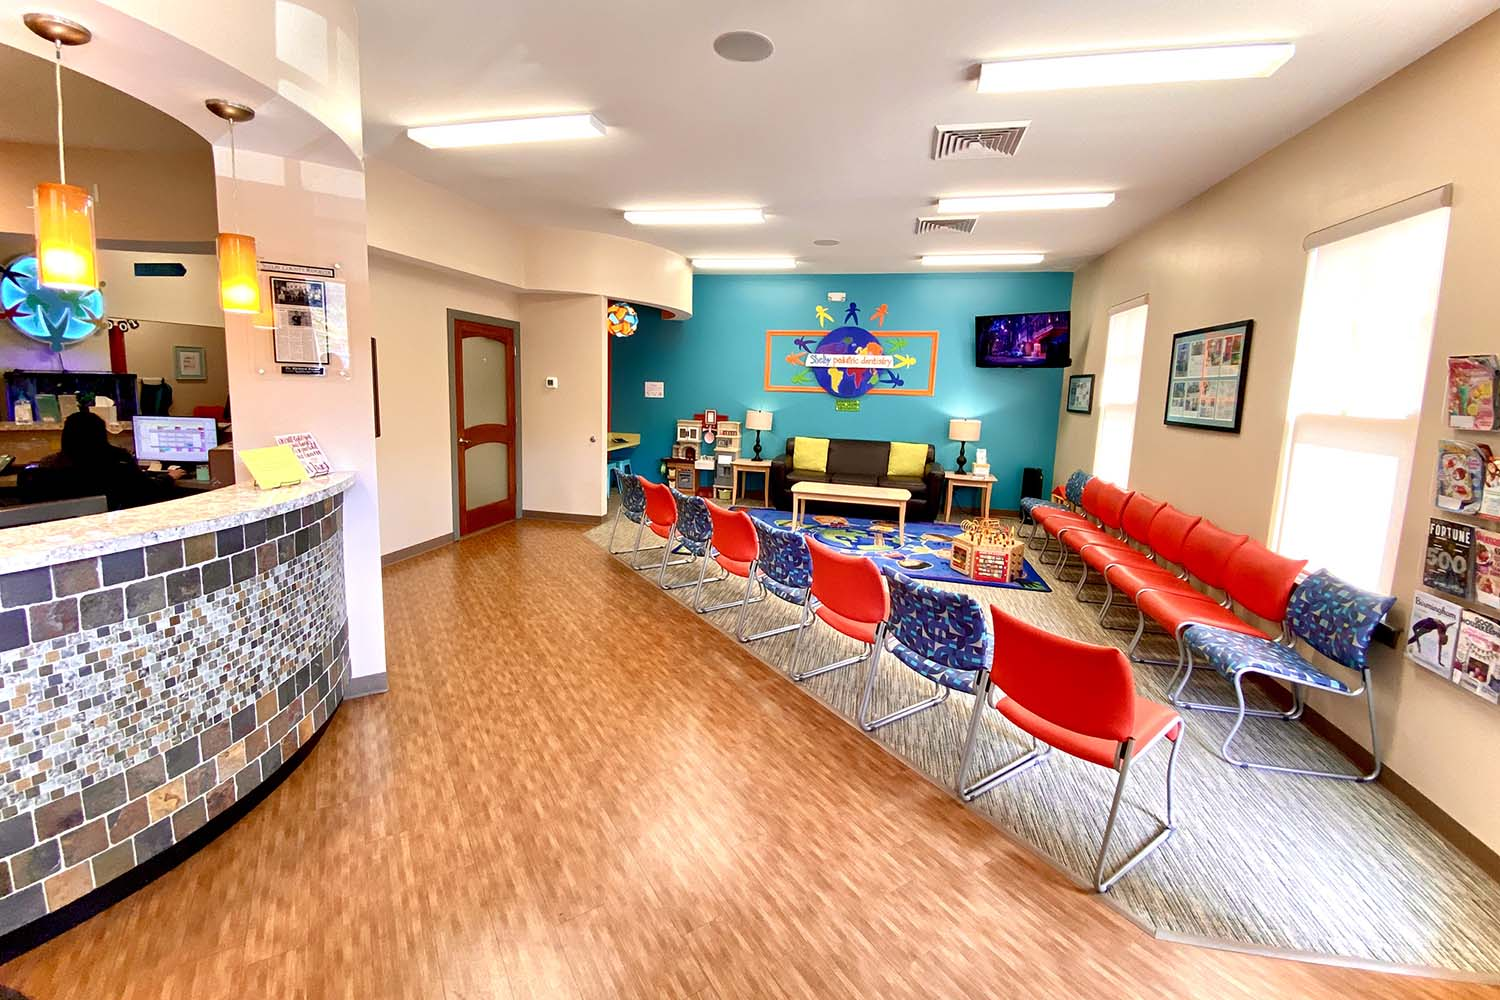 Dental care for kids Shelby Pediatric Dentist Birmingham AL Homepage Office 10